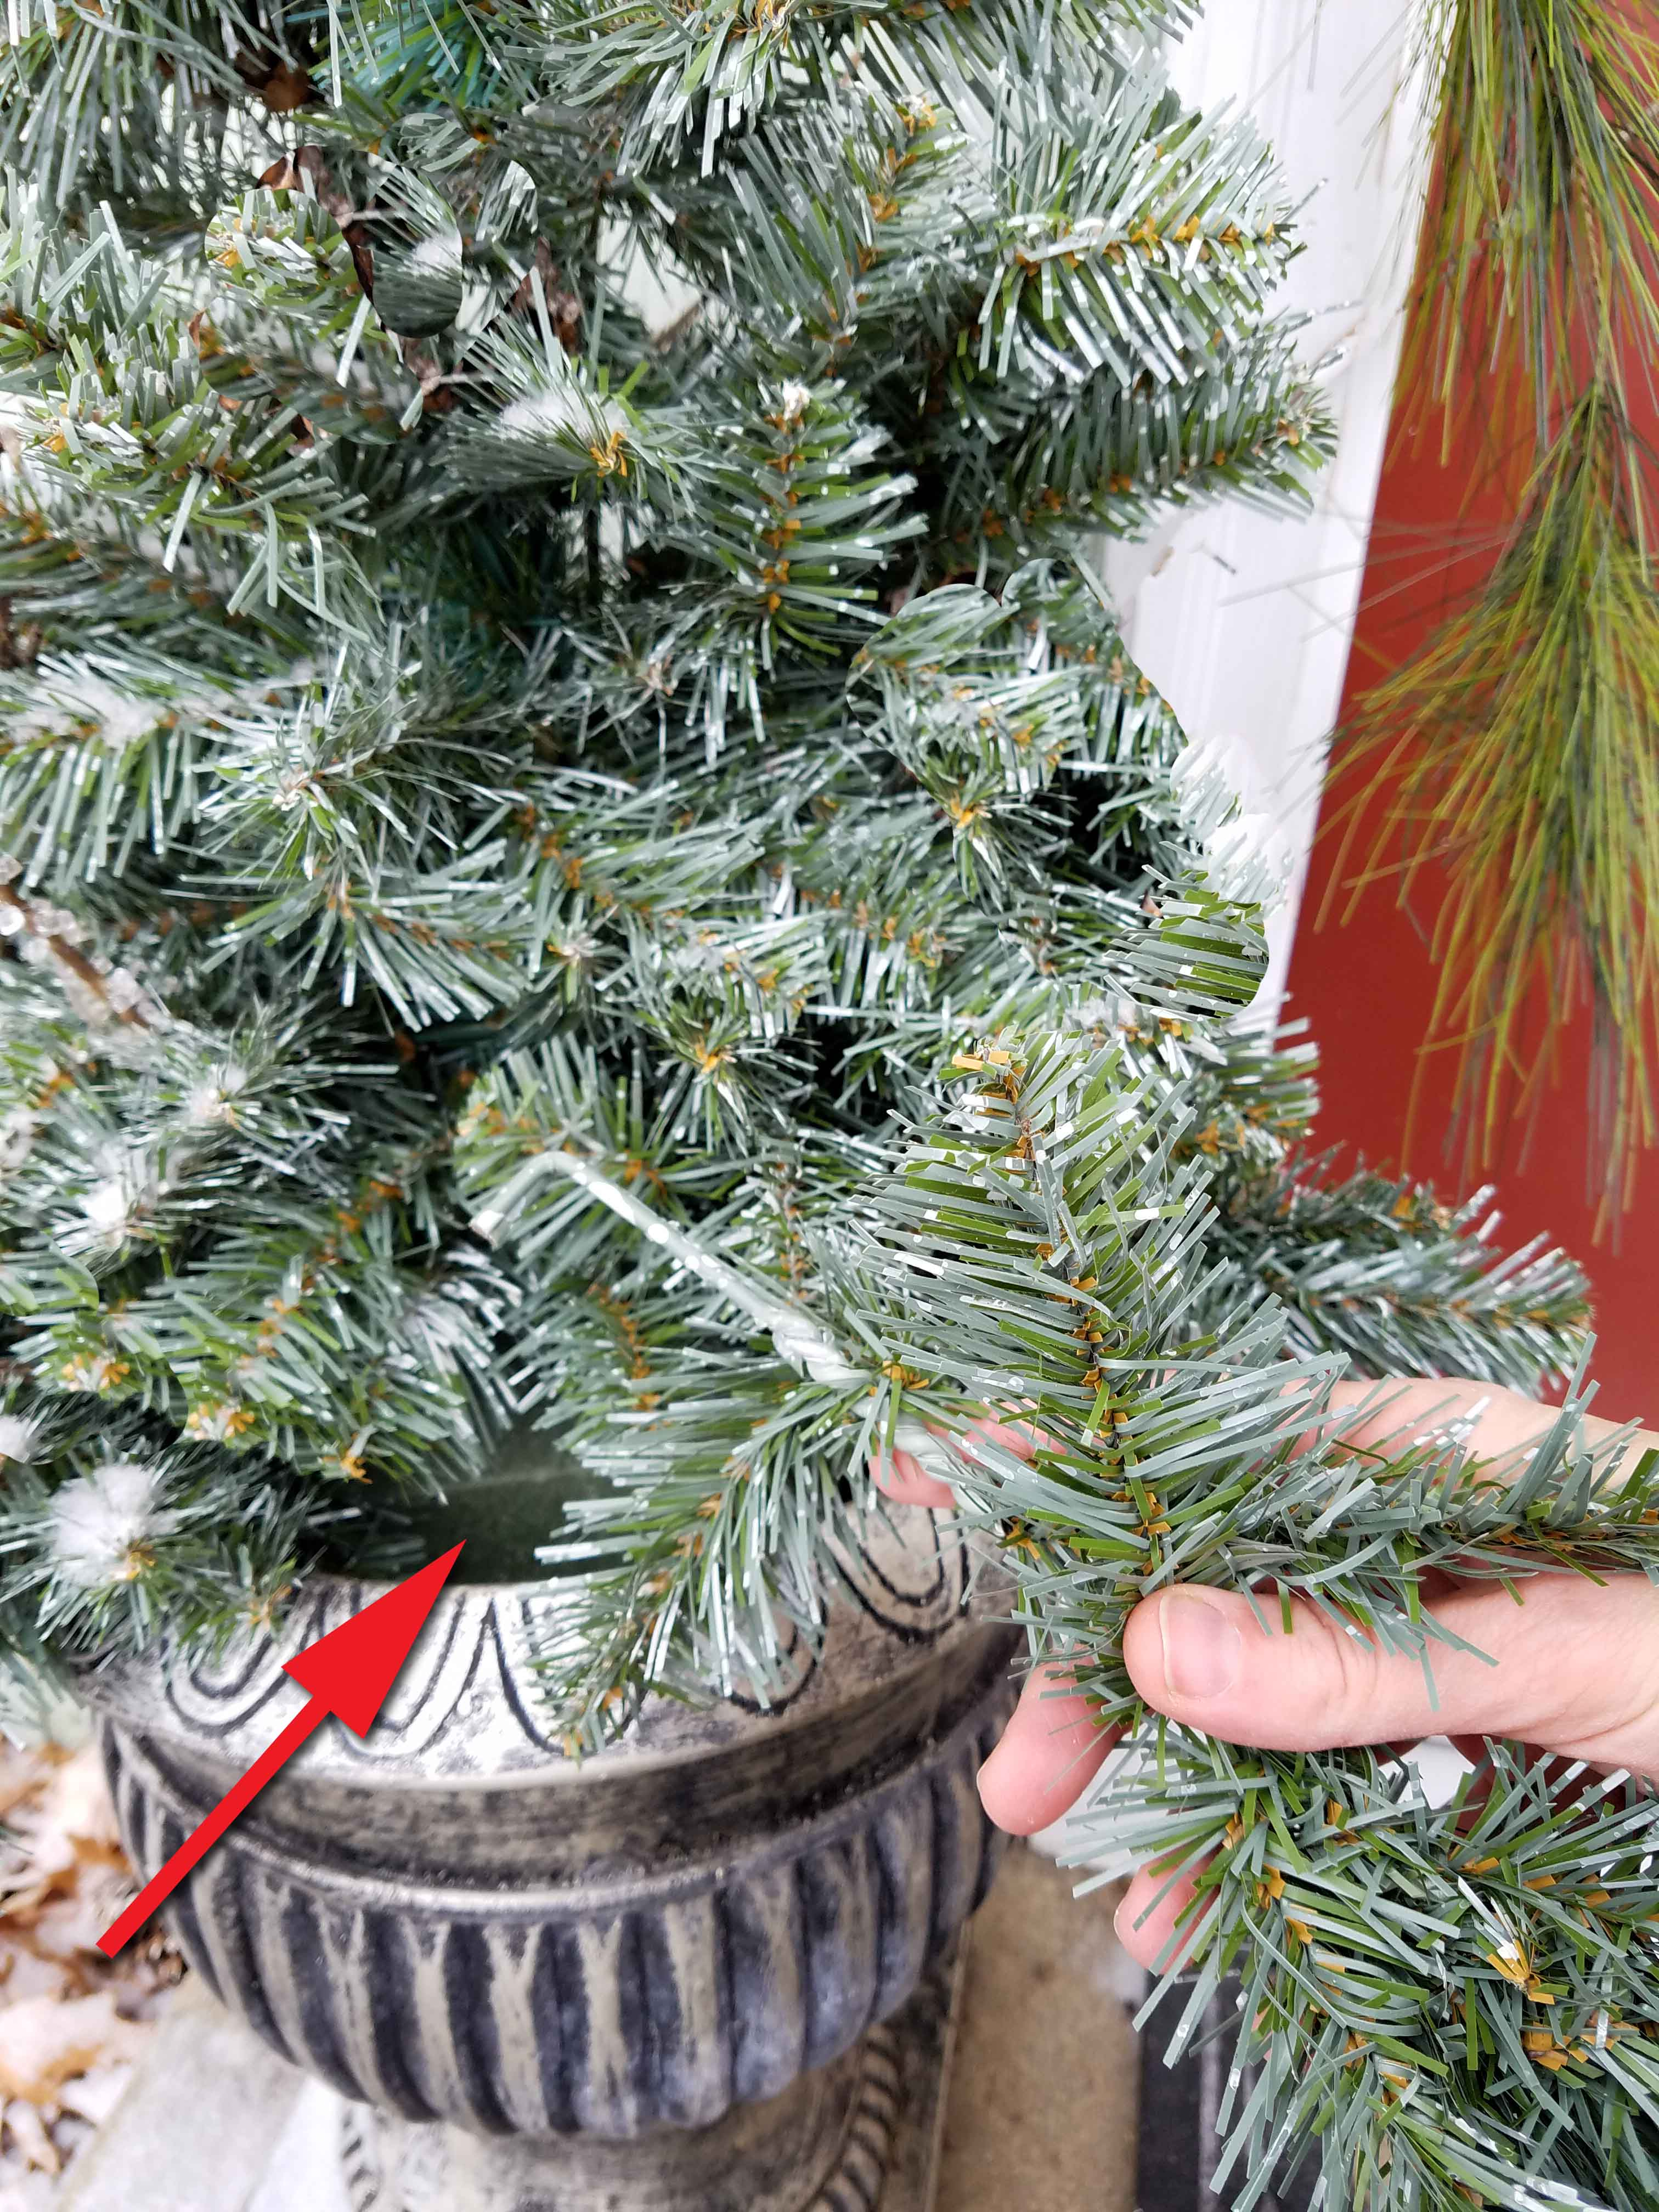 Adding Faux Tree Branches to Winter Urns | Prodigal Pieces | www.prodigalpieces.com